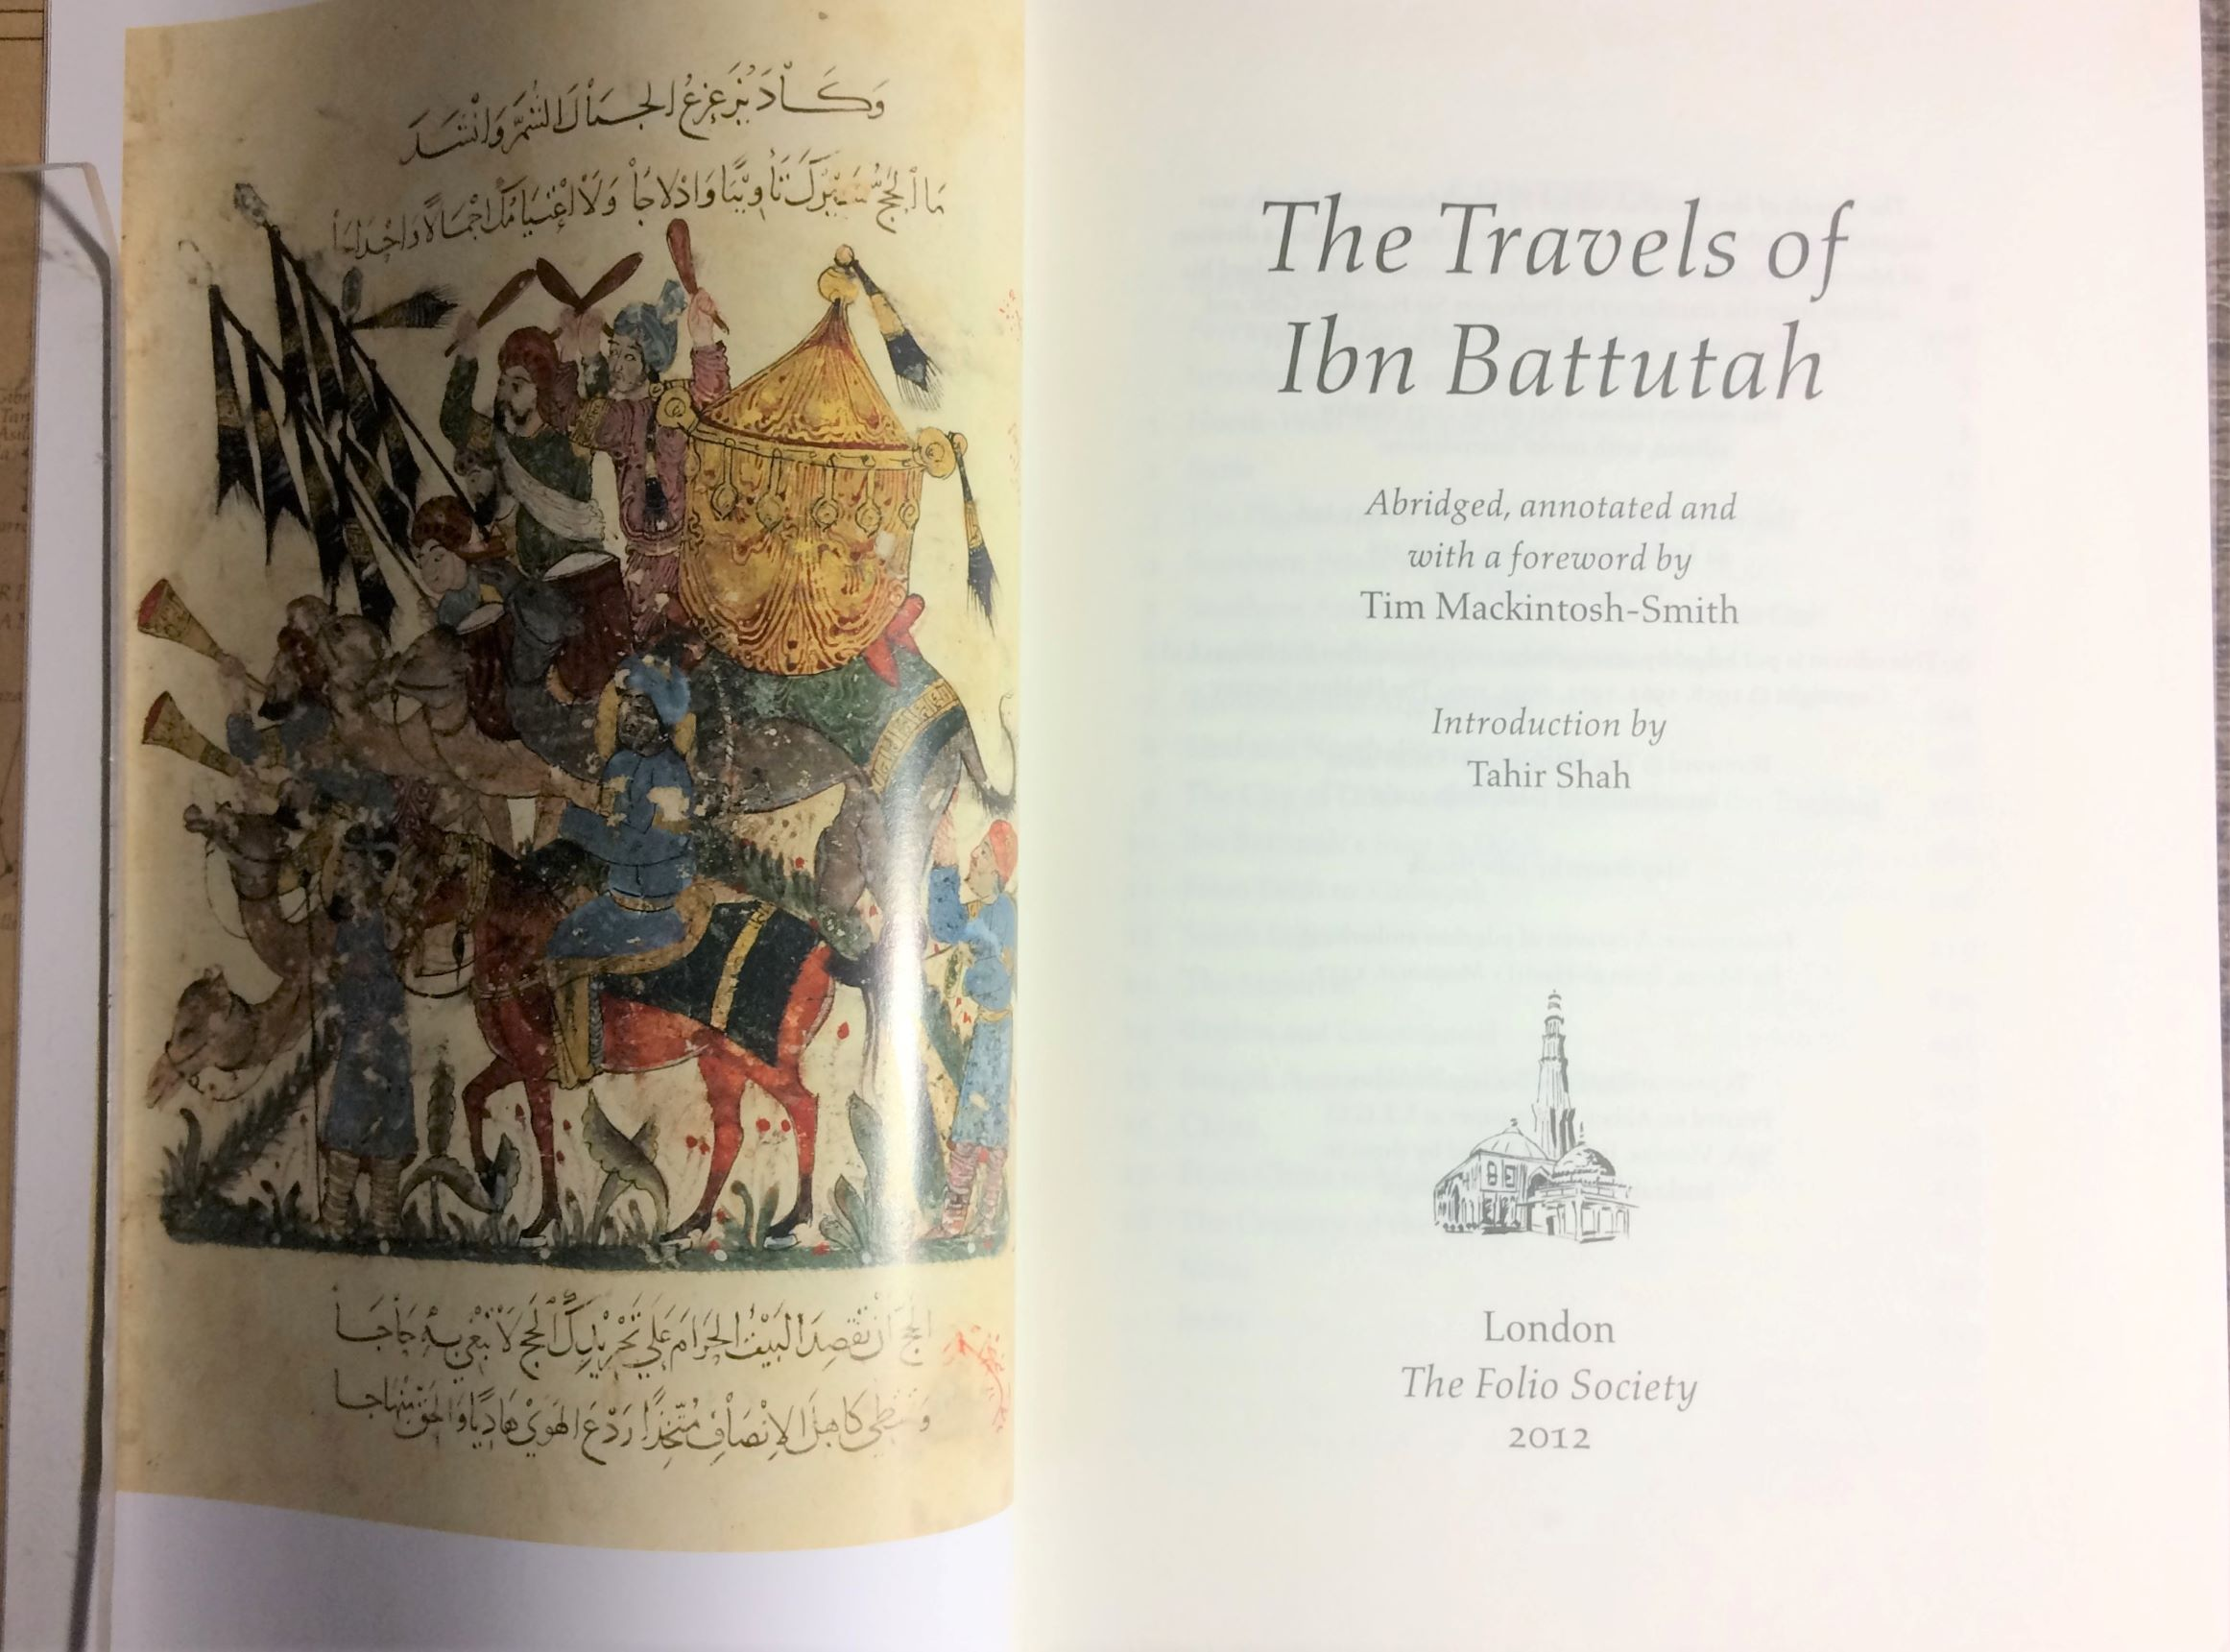 Image for The Travels of Ibn Battutah.  Abridged, annotated and with a foreword by Tim Mackintosh-Smith. Introduction by Tahir Shah.